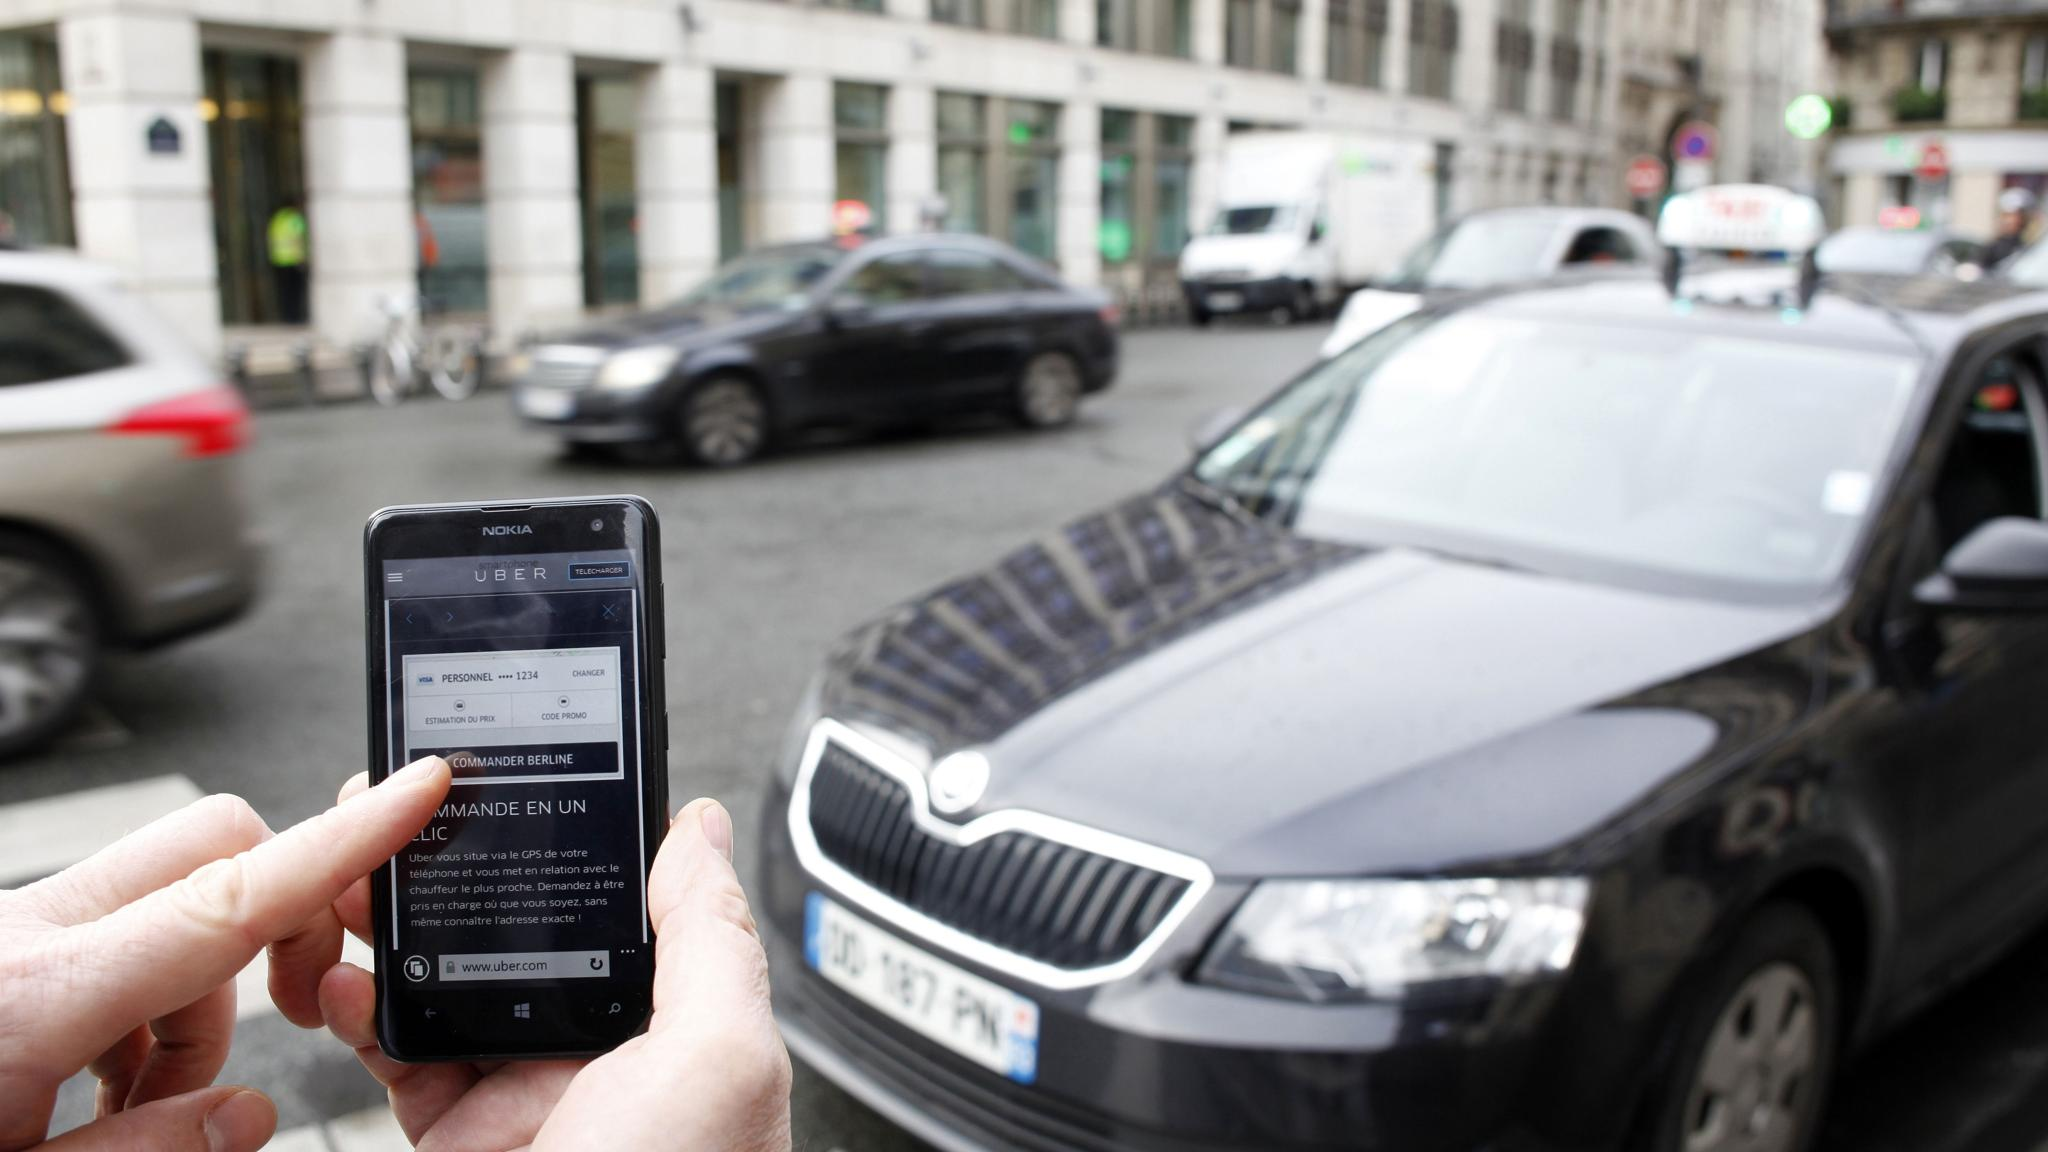 Boost for Uber as Brussels considers regulation of ride